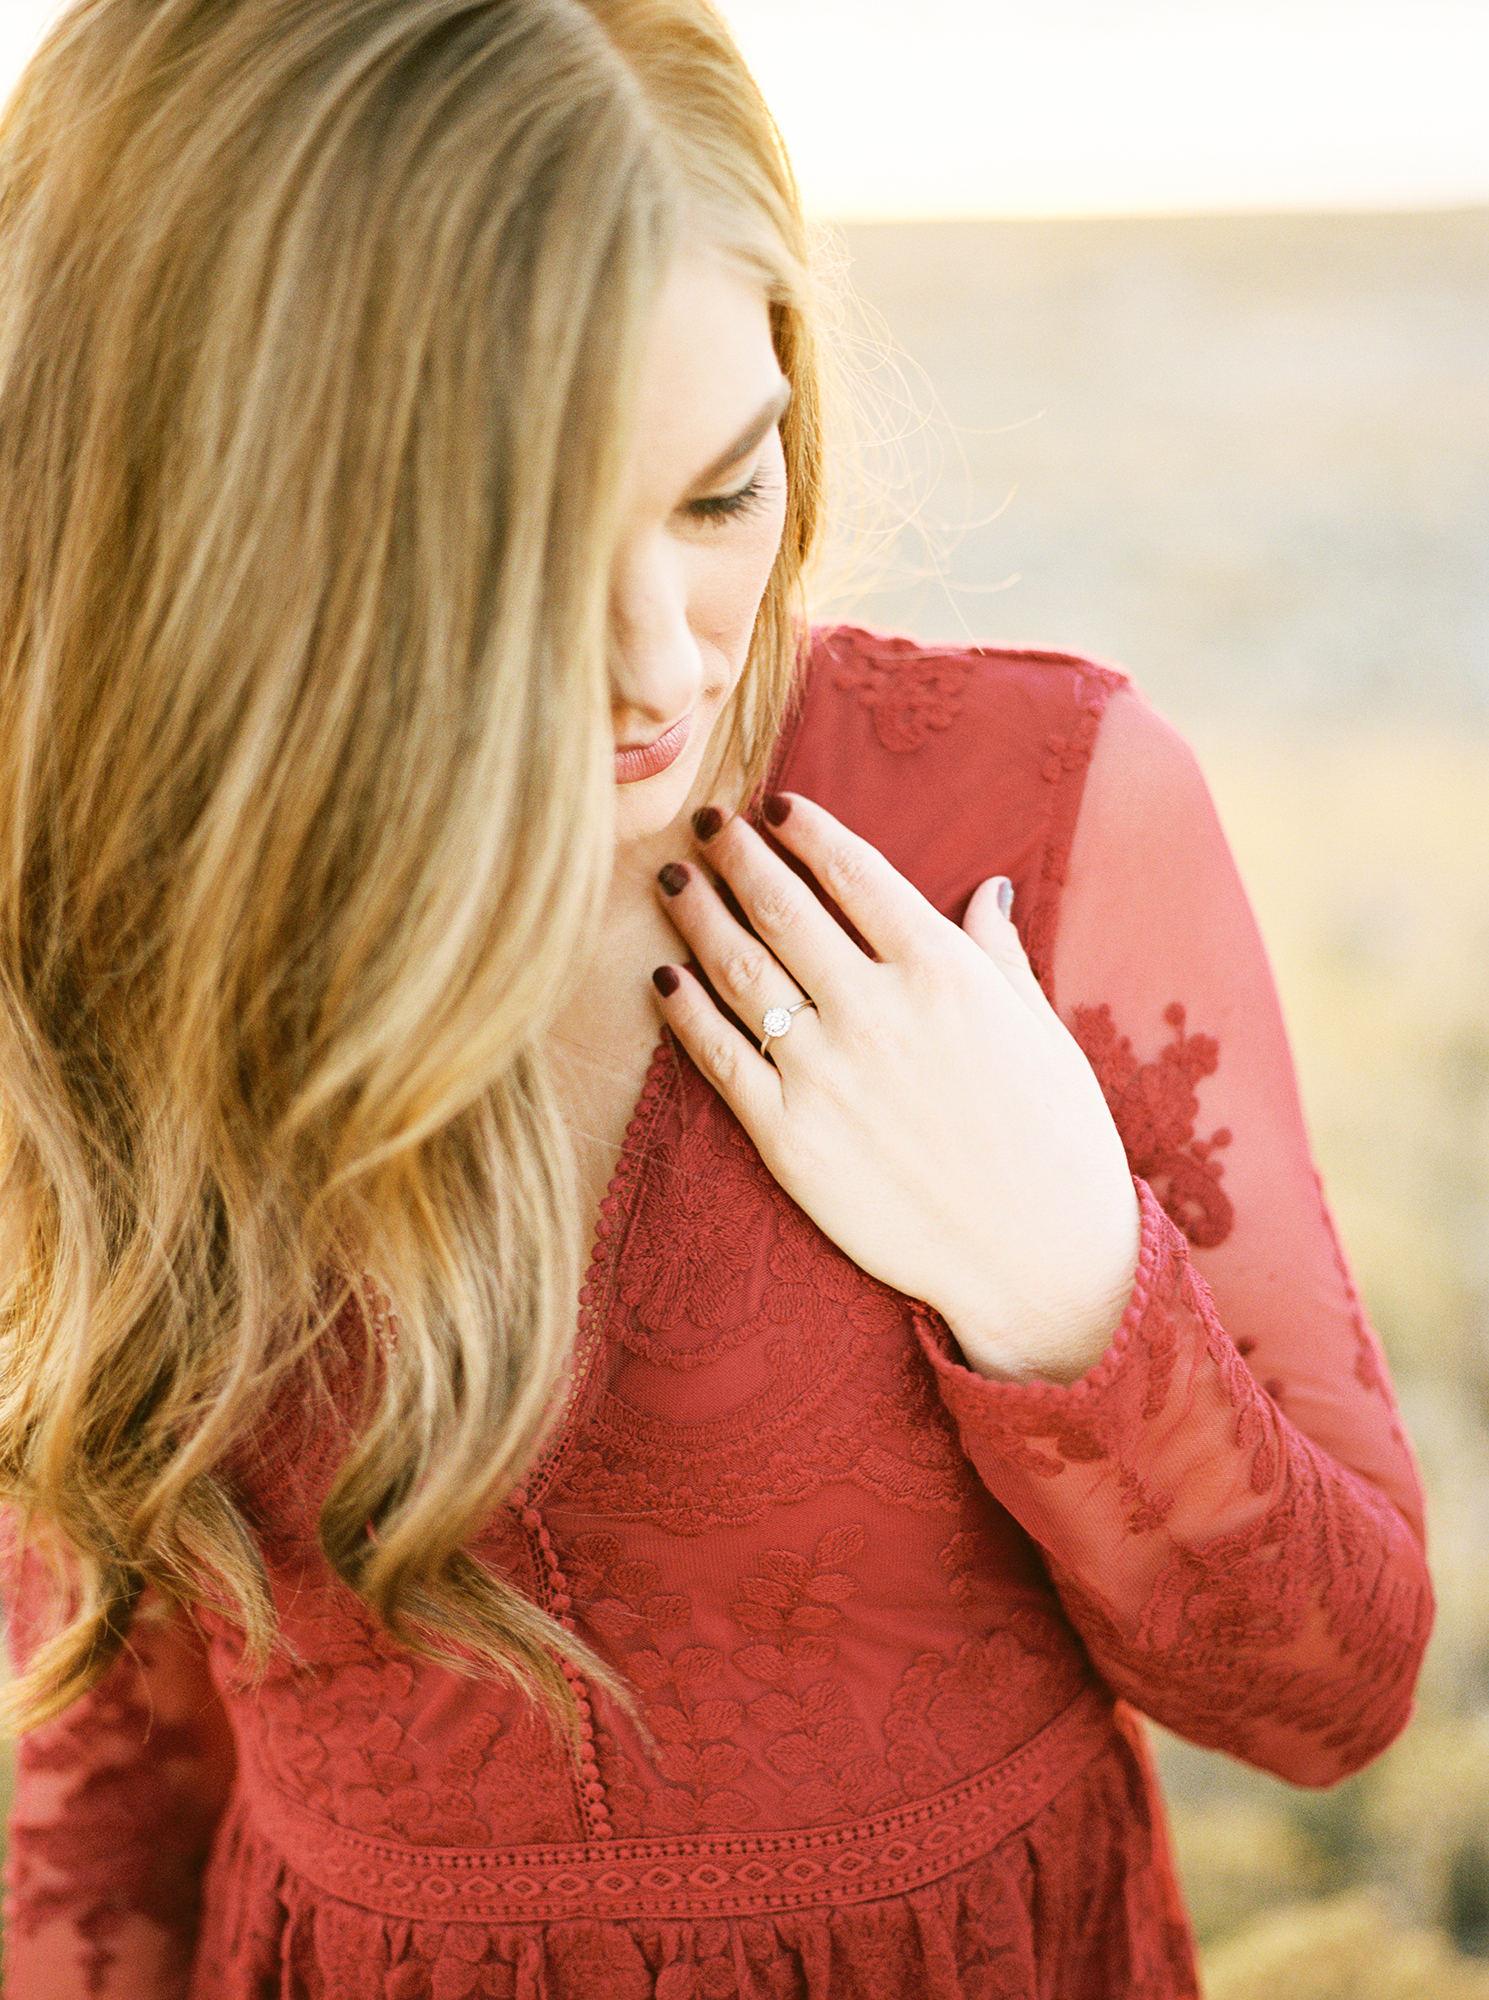 new-mexico-engagement-photographer-skylar-rain-photography-k-l-4.jpg